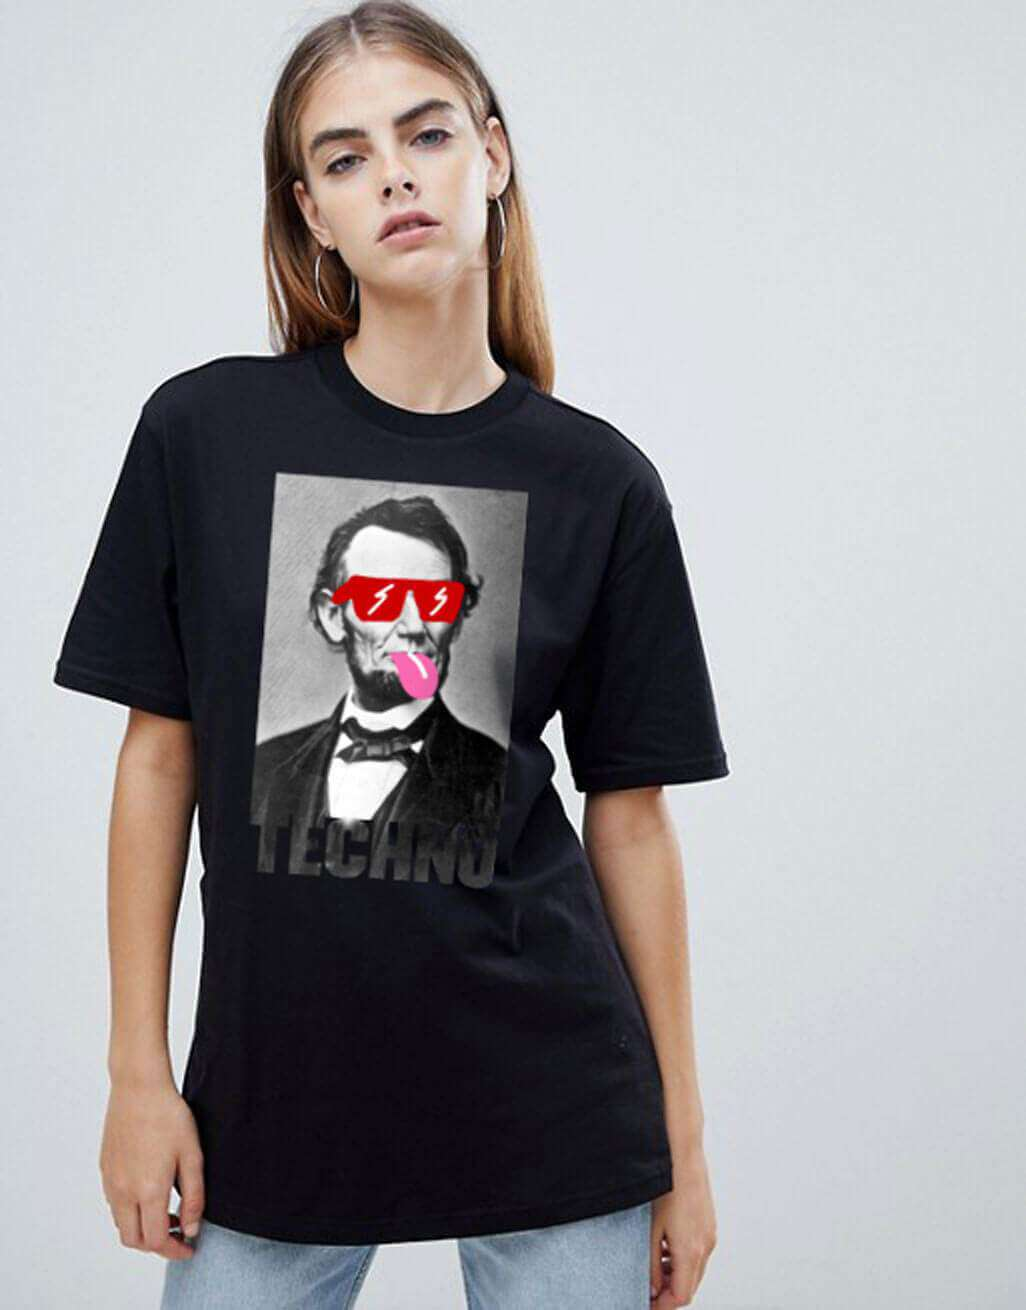 President Techno T-Shirt